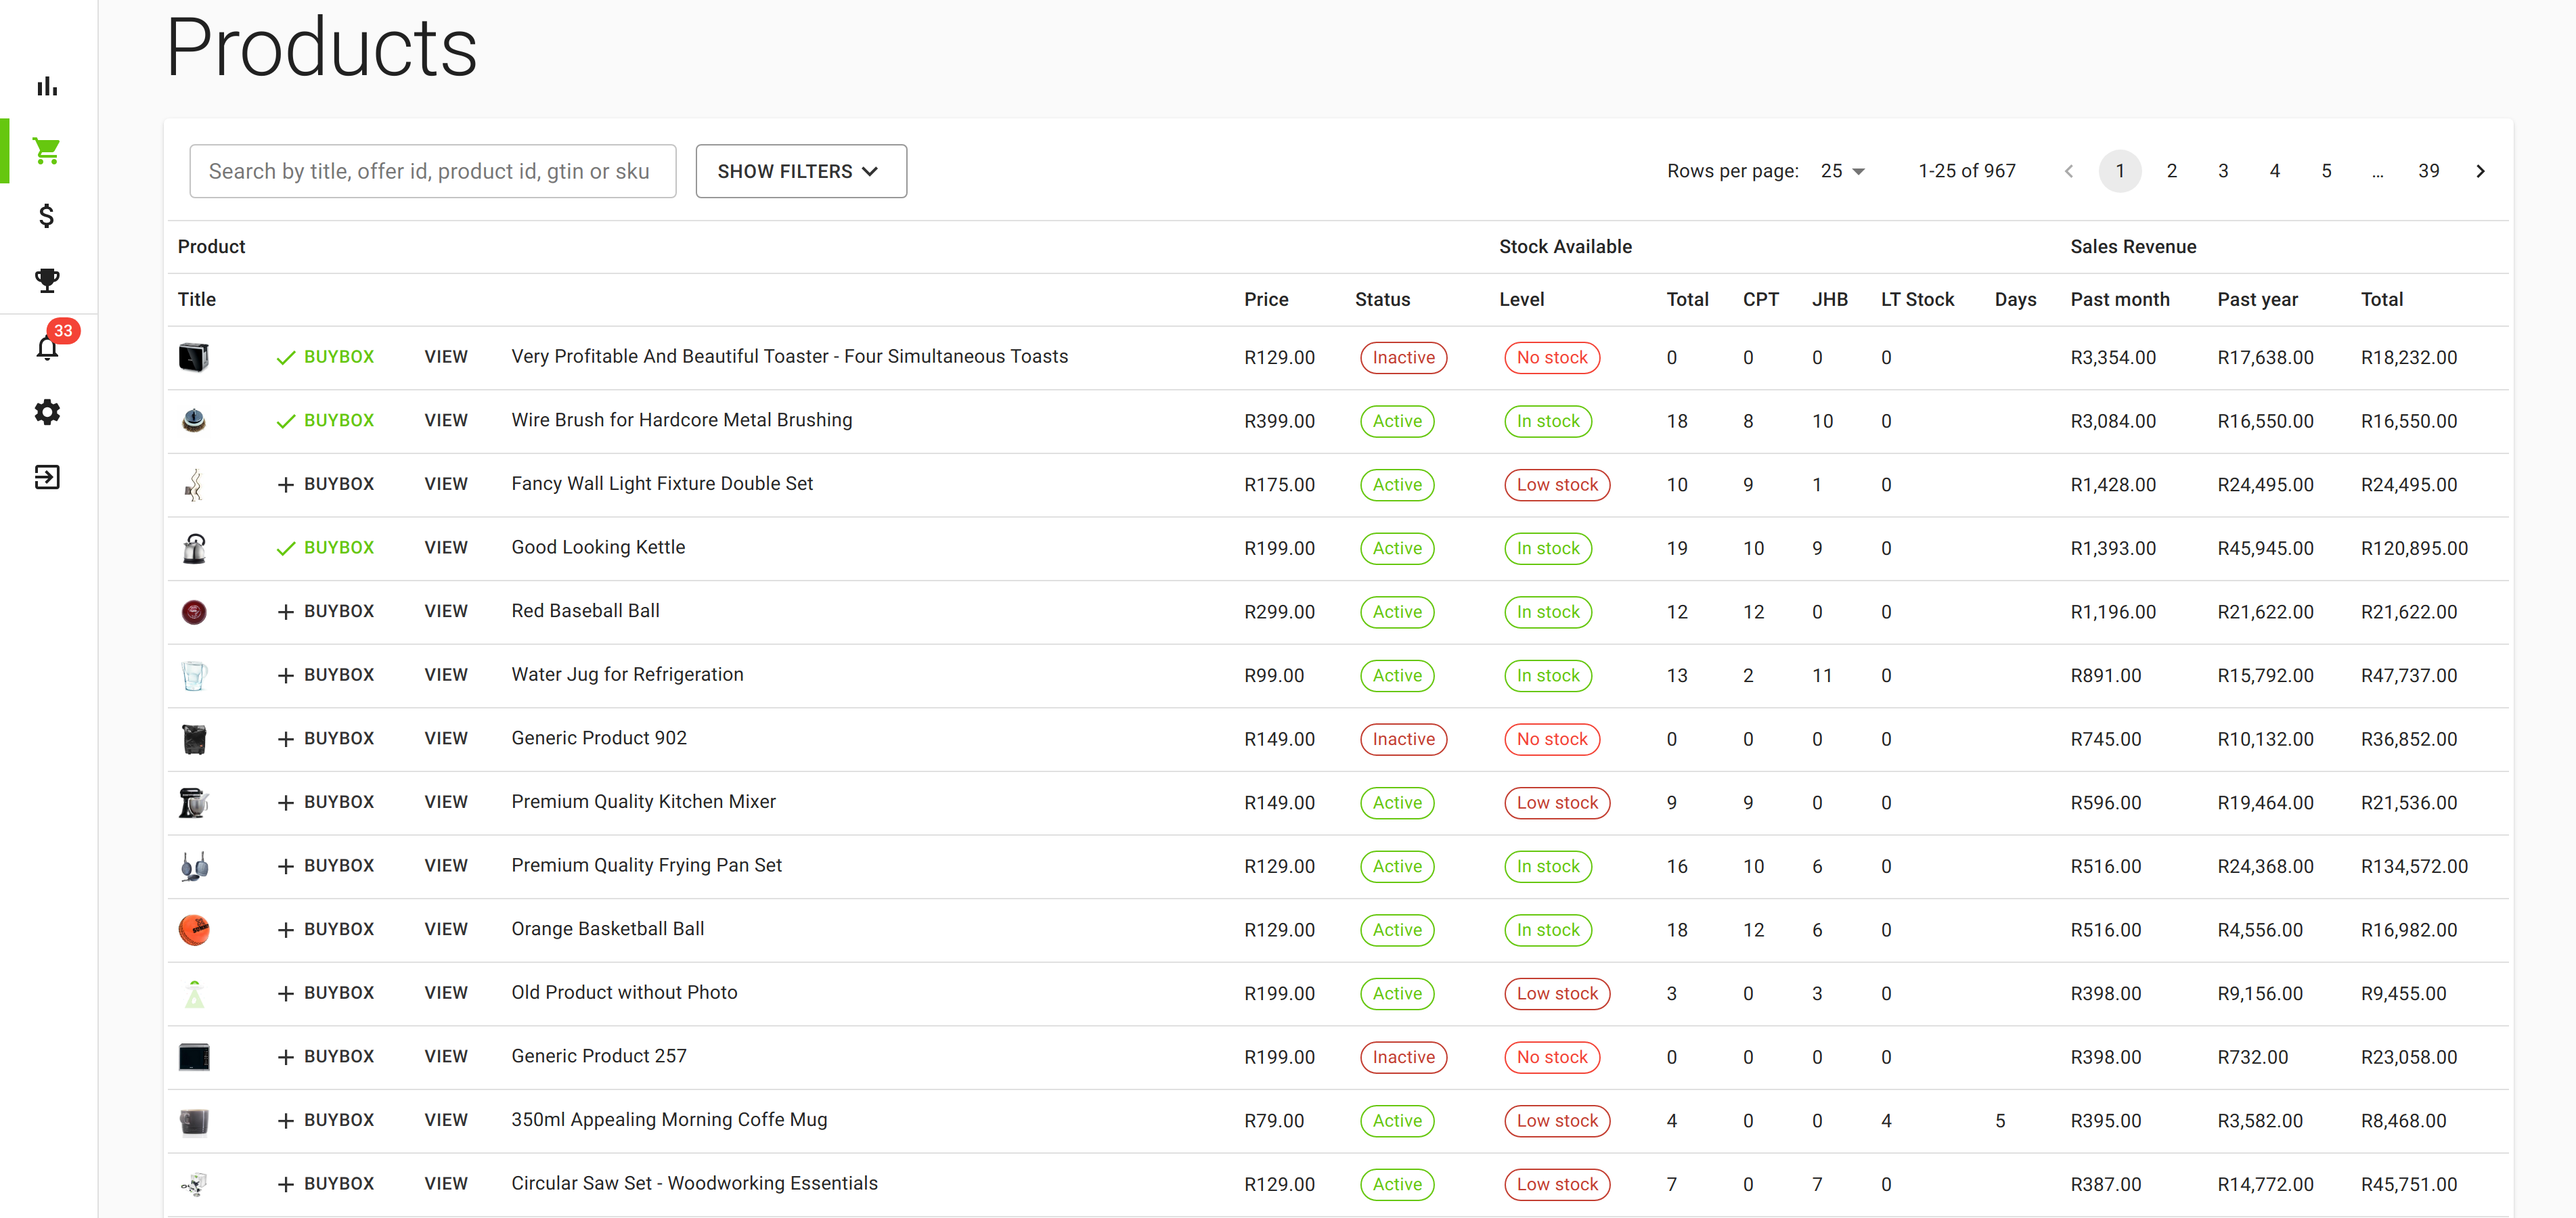 Products page listing all your products and their statistics